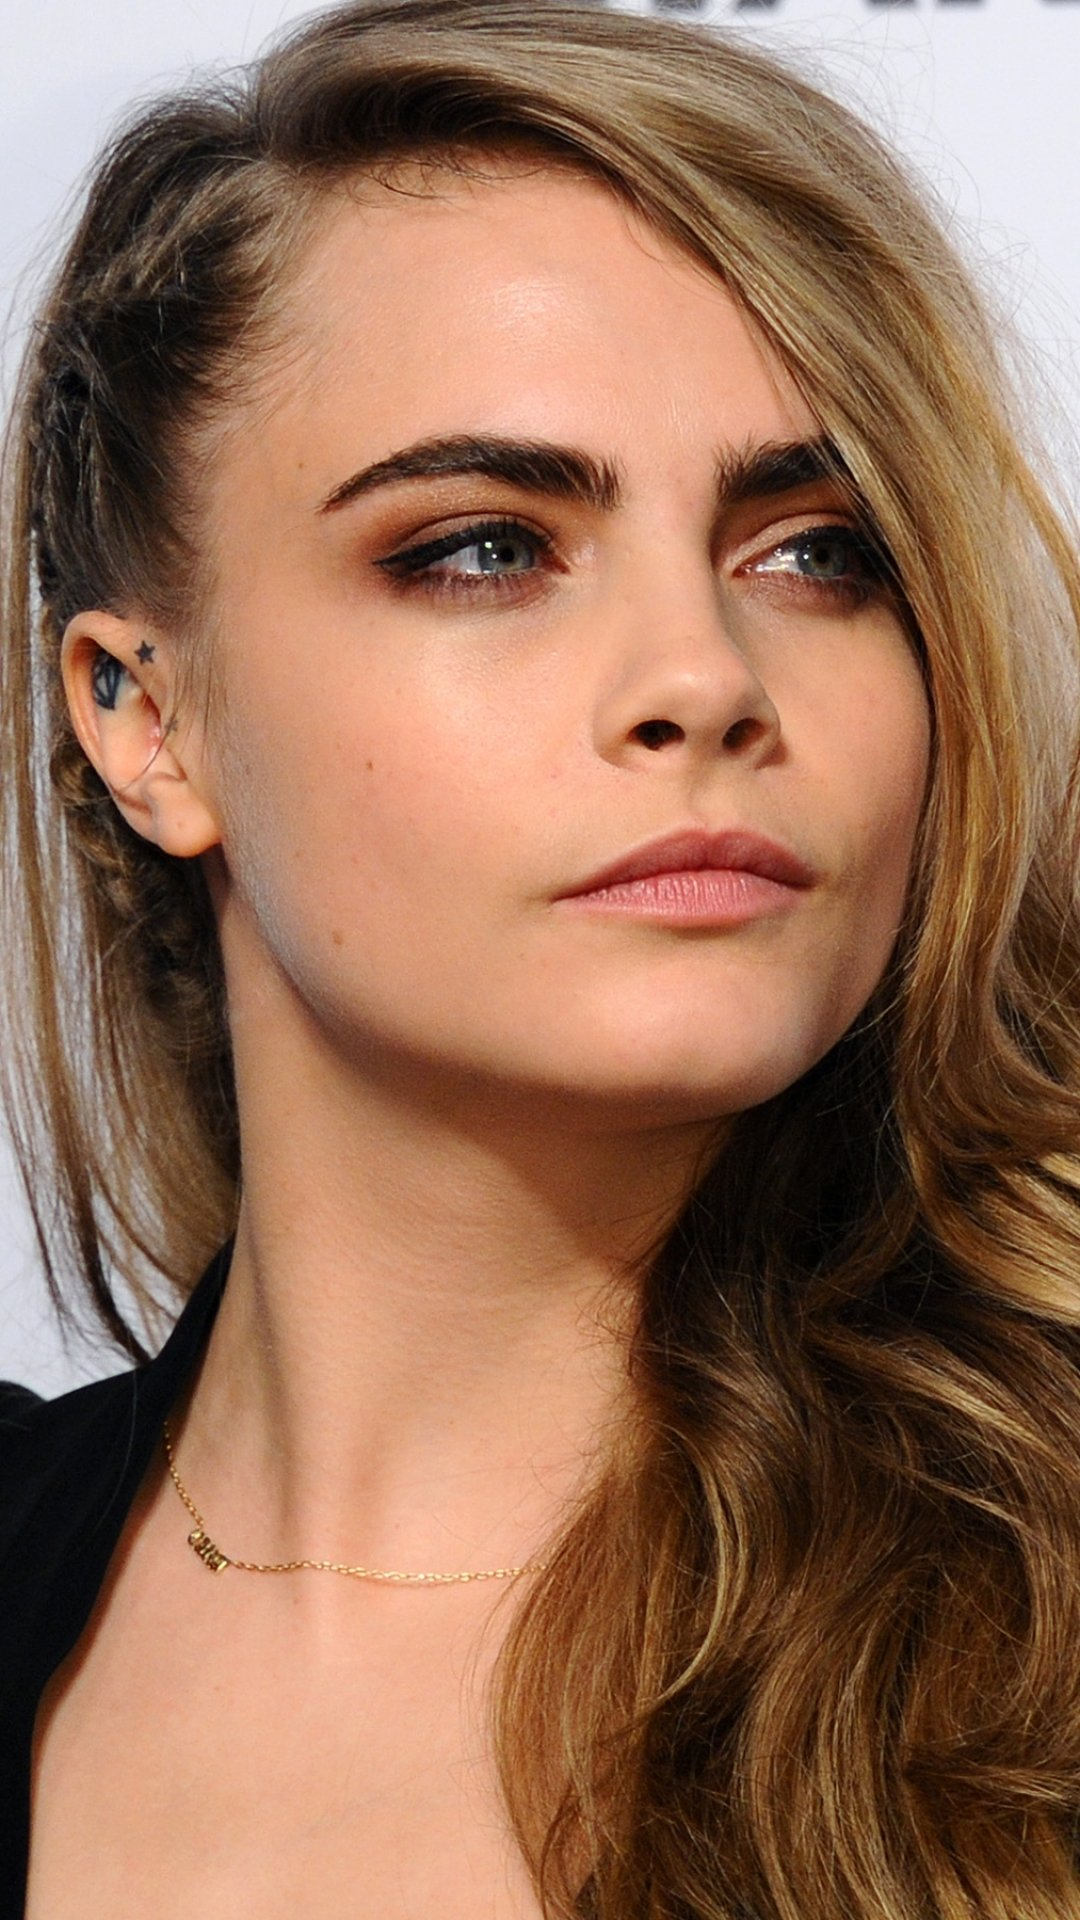 Cara Delevingne Phone Wallpapers Wallpaper Cave